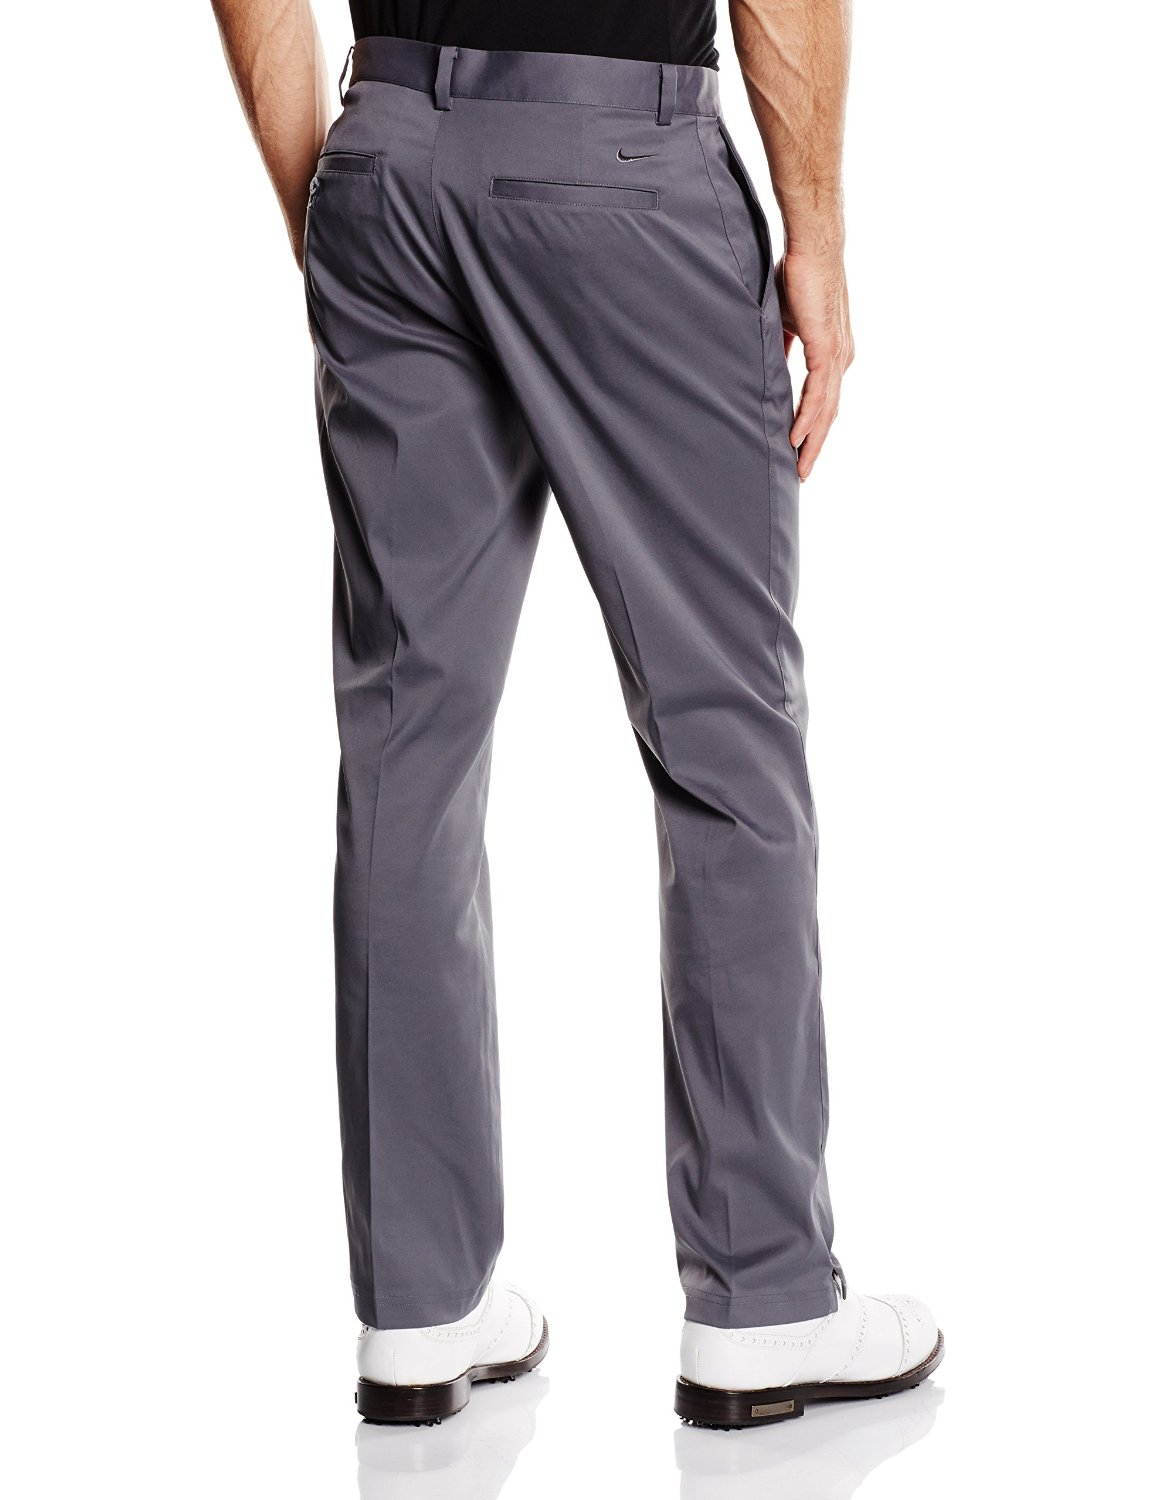 7325a2e17d80 What are the Best Golf Pants  - Golf Gear Geeks